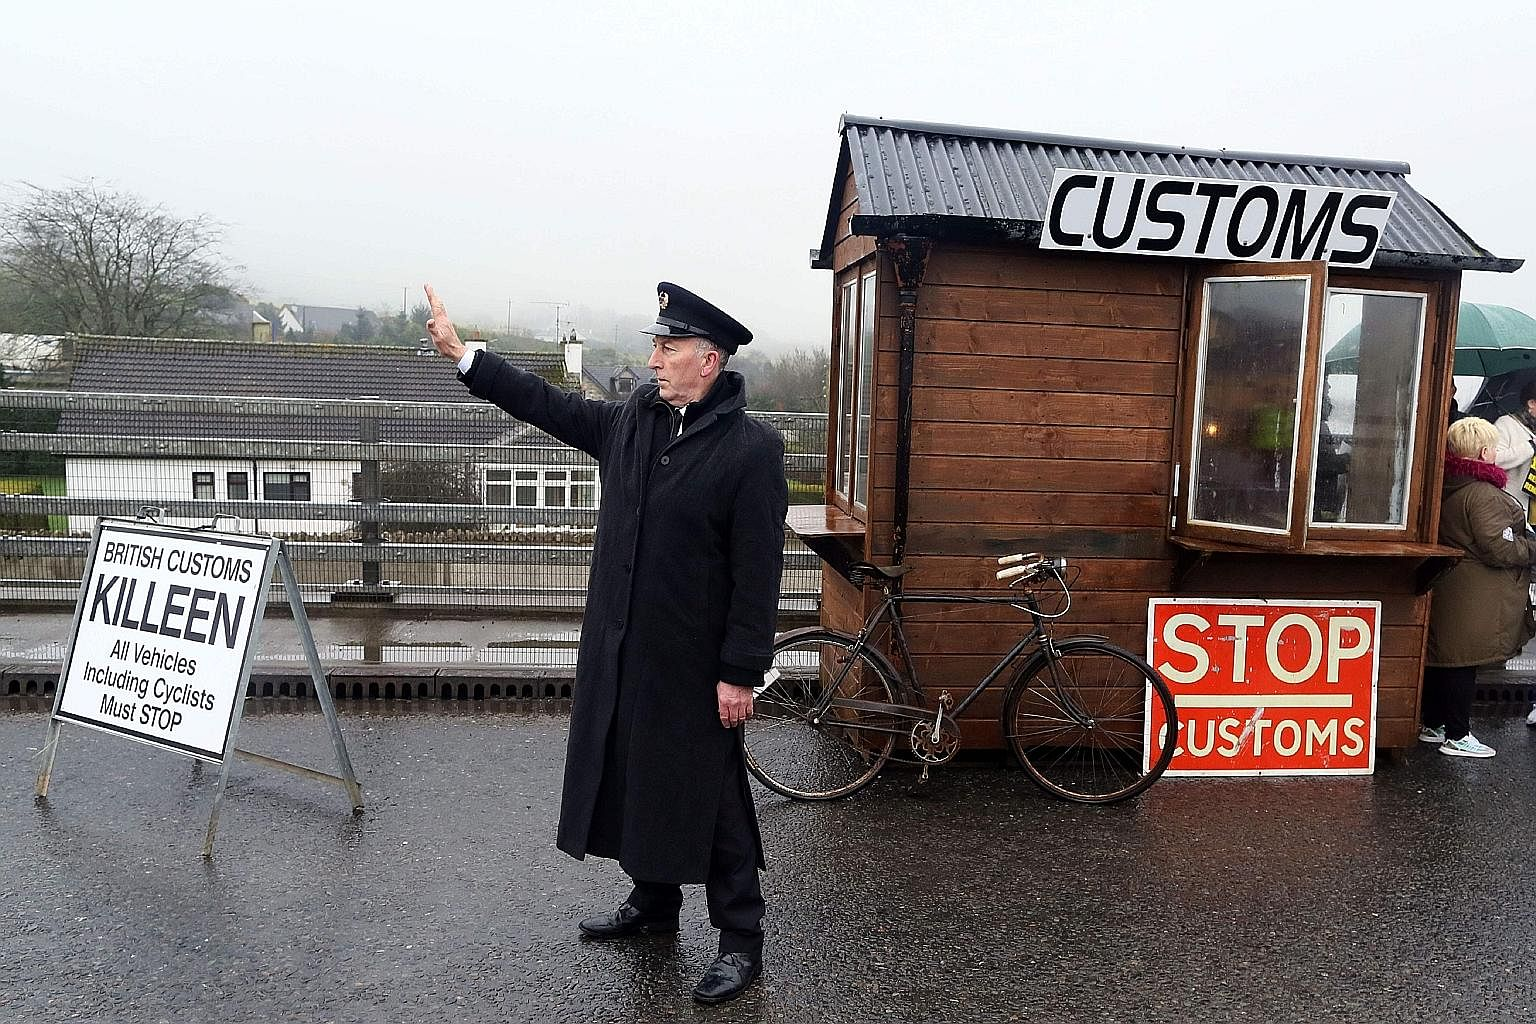 A demonstrator dressed as a Customs official at a mock checkpoint near Dundalk, Ireland, protesting against potential border checks into Northern Ireland following Brexit.